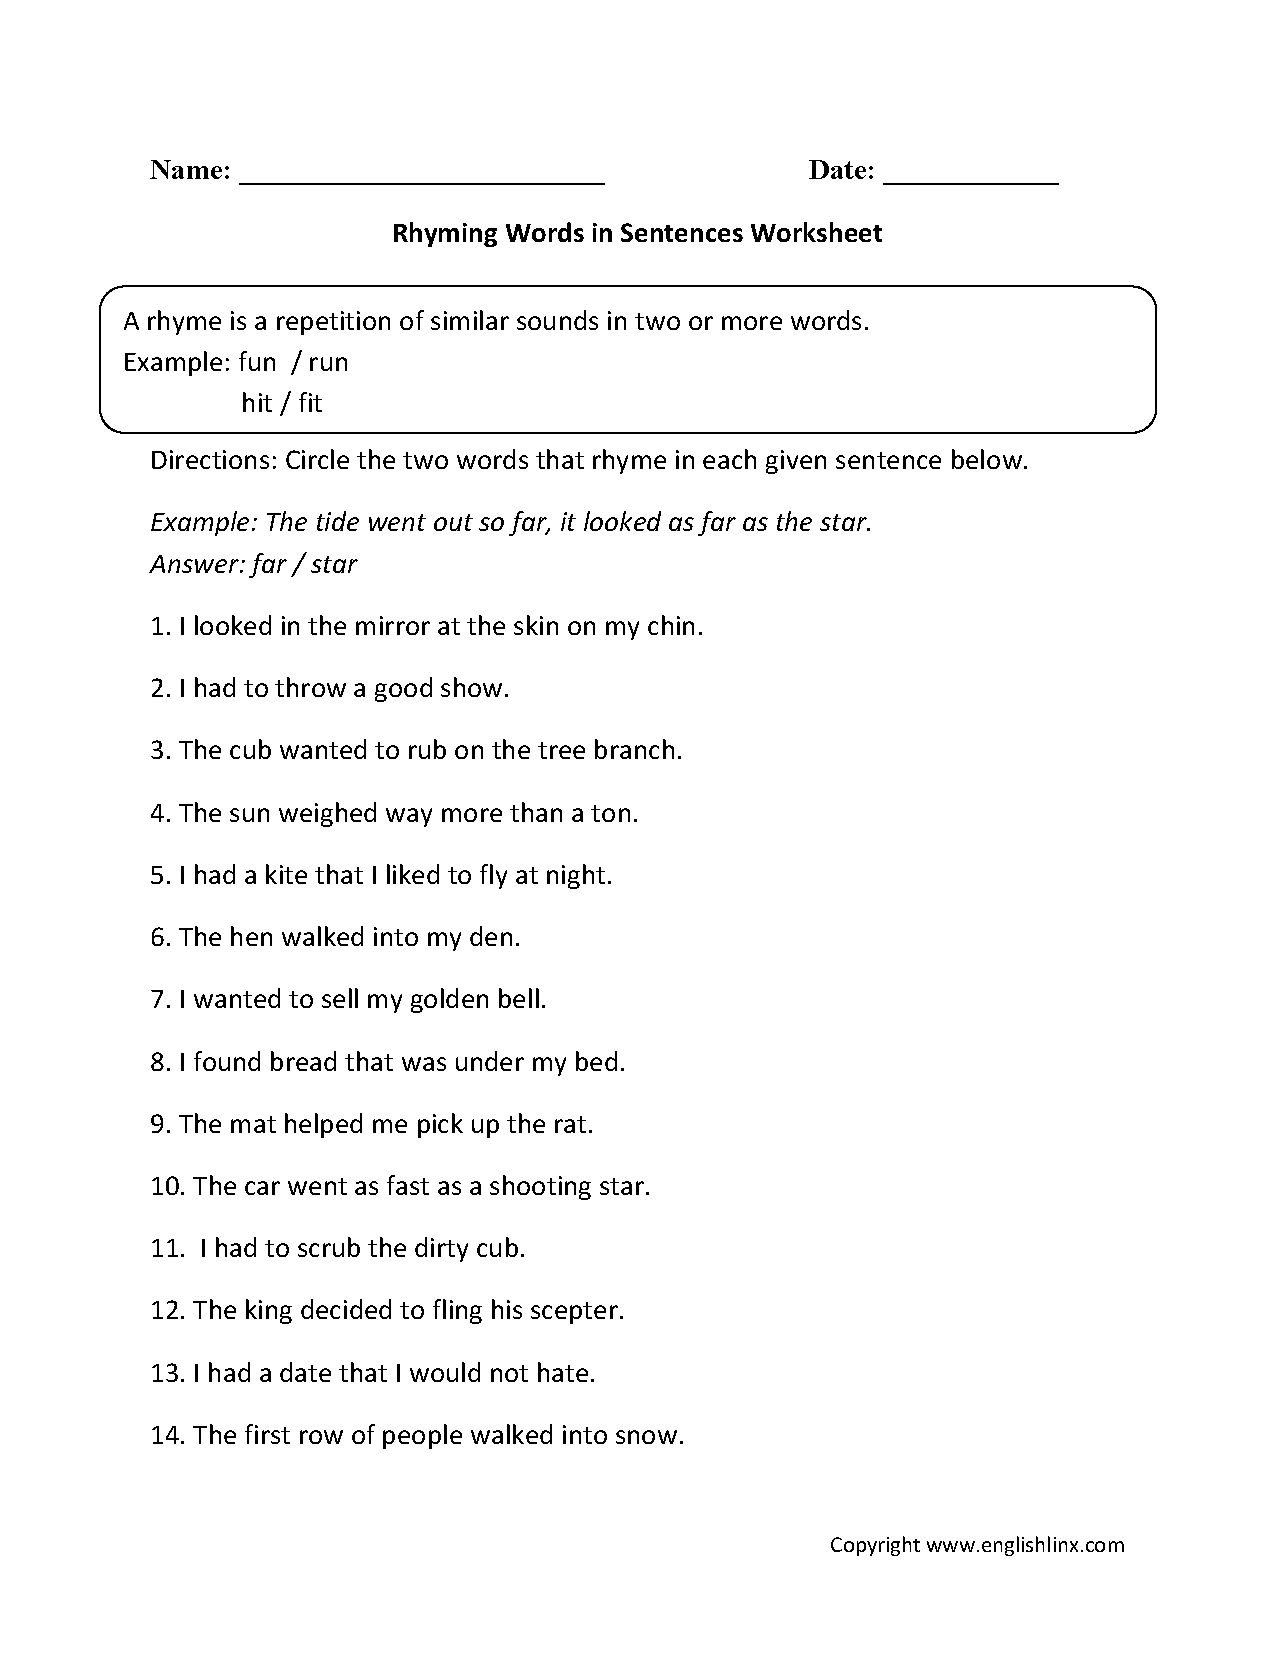 Worksheets Example Of Rhyming Words In Sentence rhyming worksheets words in sentences worksheet worksheet